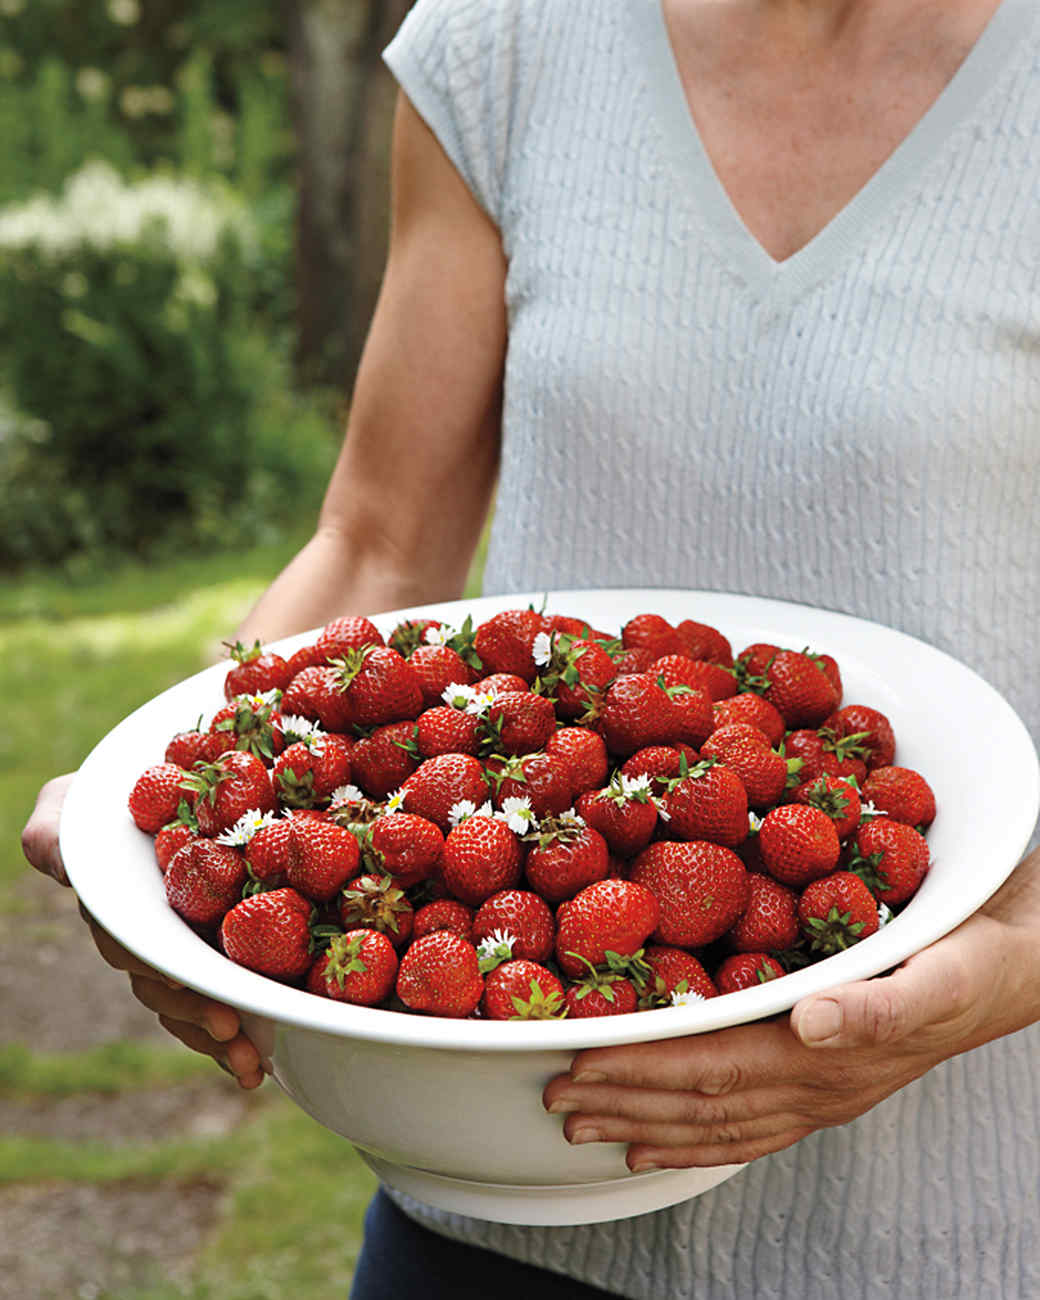 strawberries-i0c6610r-md109179.jpg